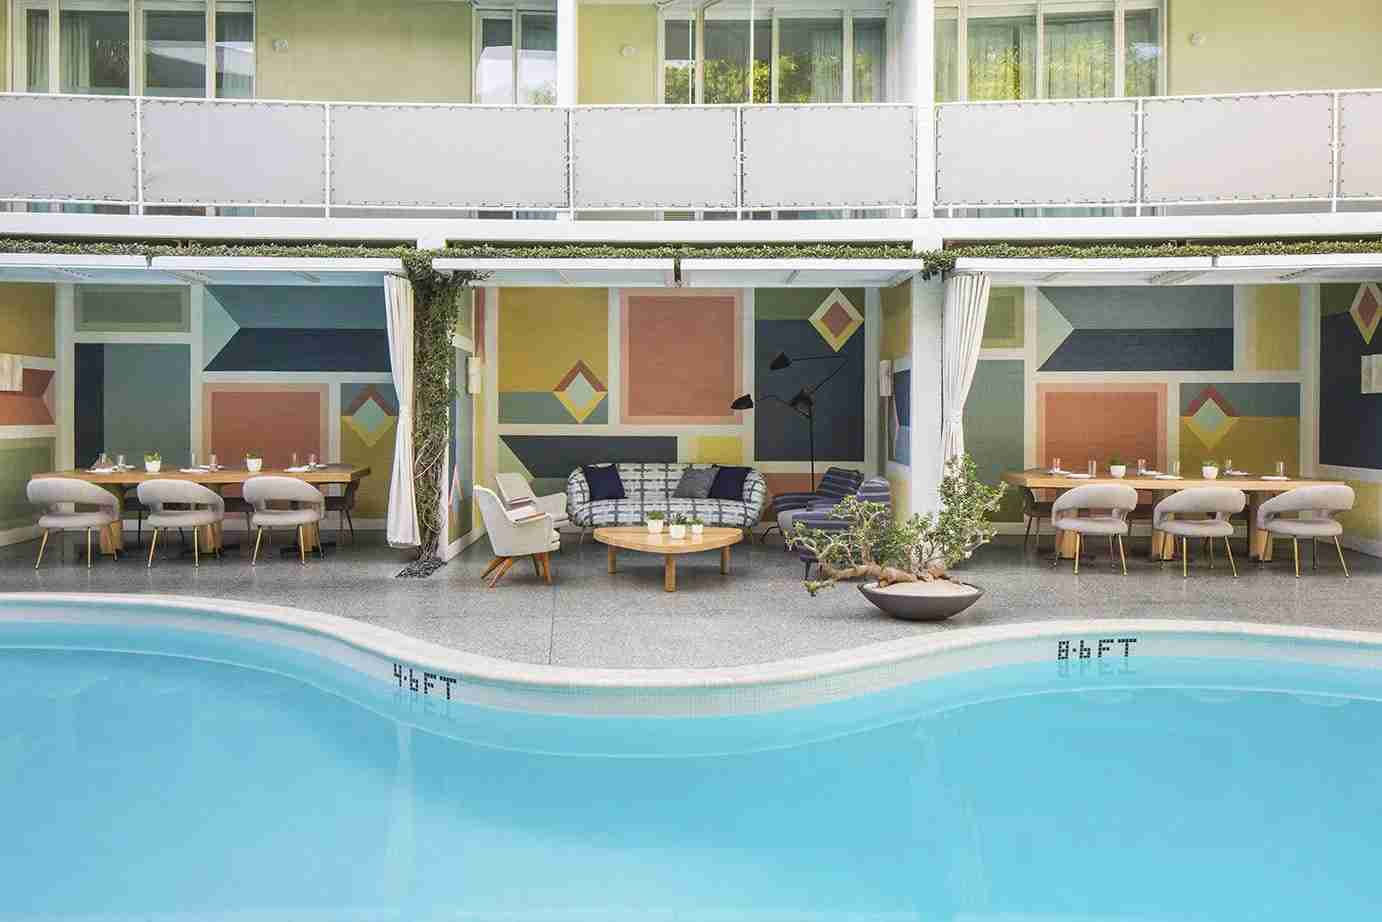 With retro design and luxe furnishings, the Avalon Beverly Hills is a stylish spot. (photo courtesy of the hotel)